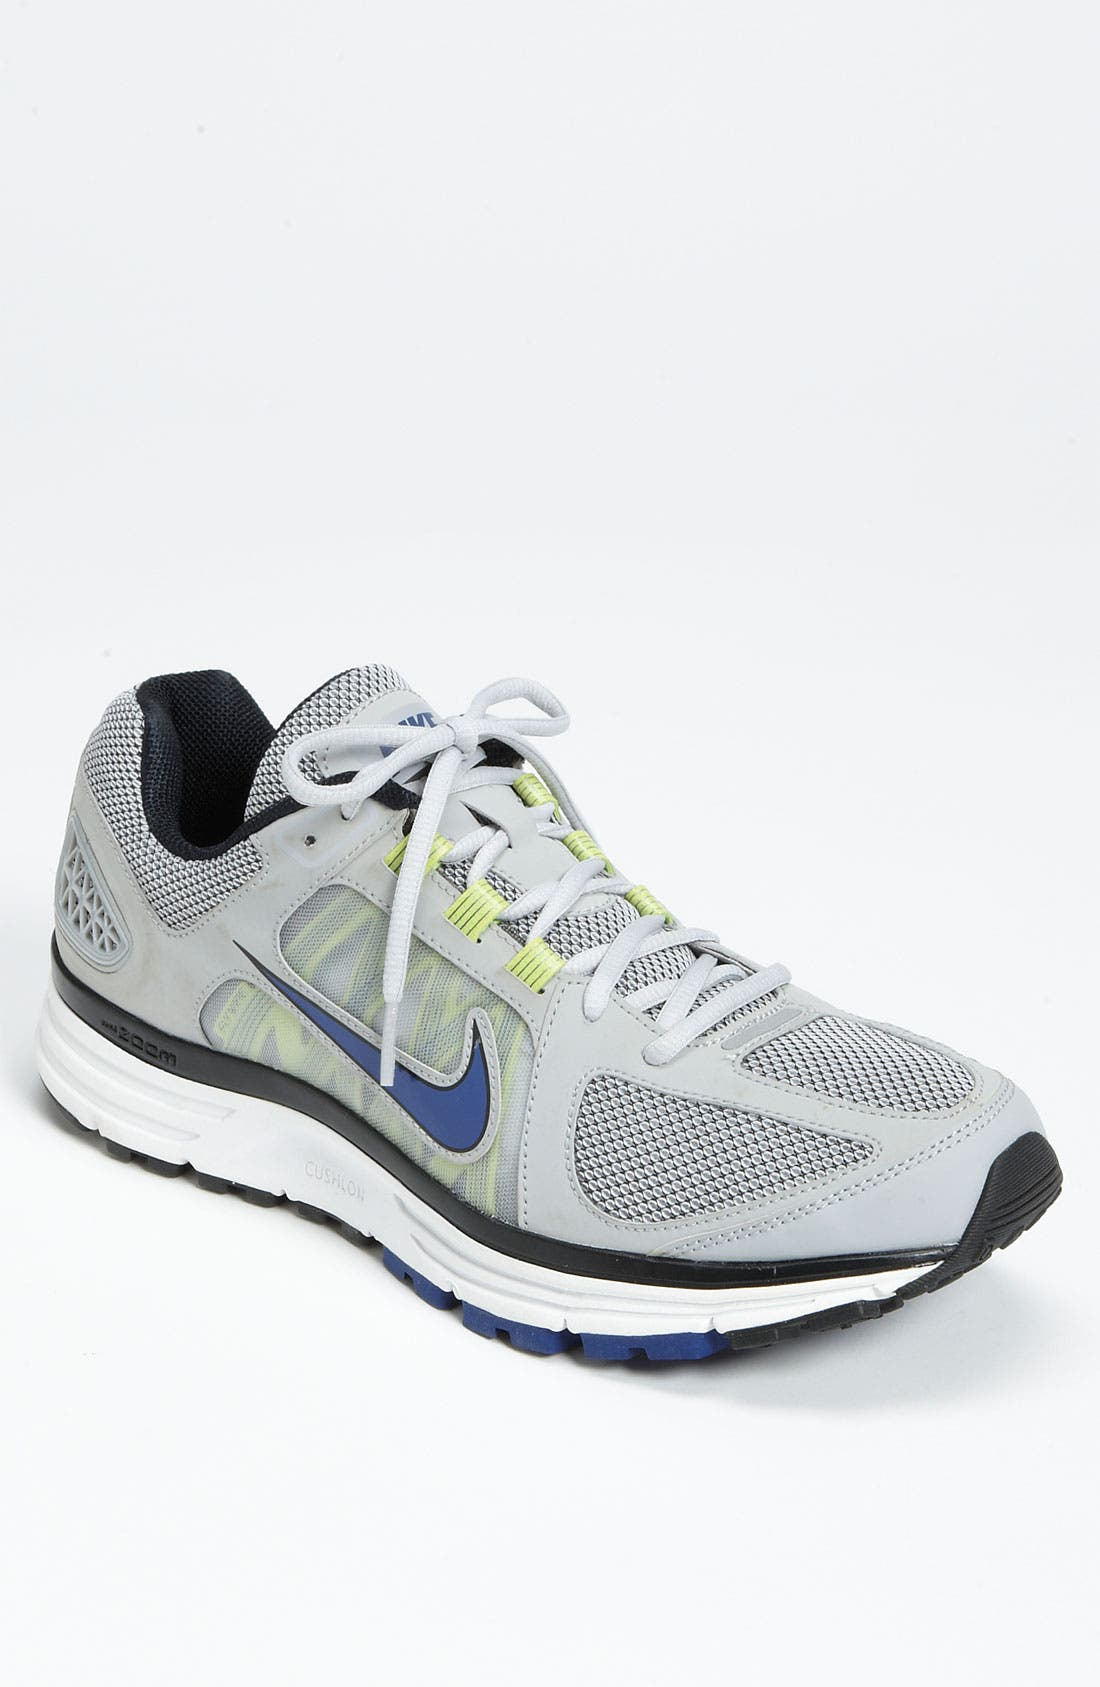 Alternate Image 1 Selected - Nike 'Zoom Vomero+ 7' Running Shoe (Men)